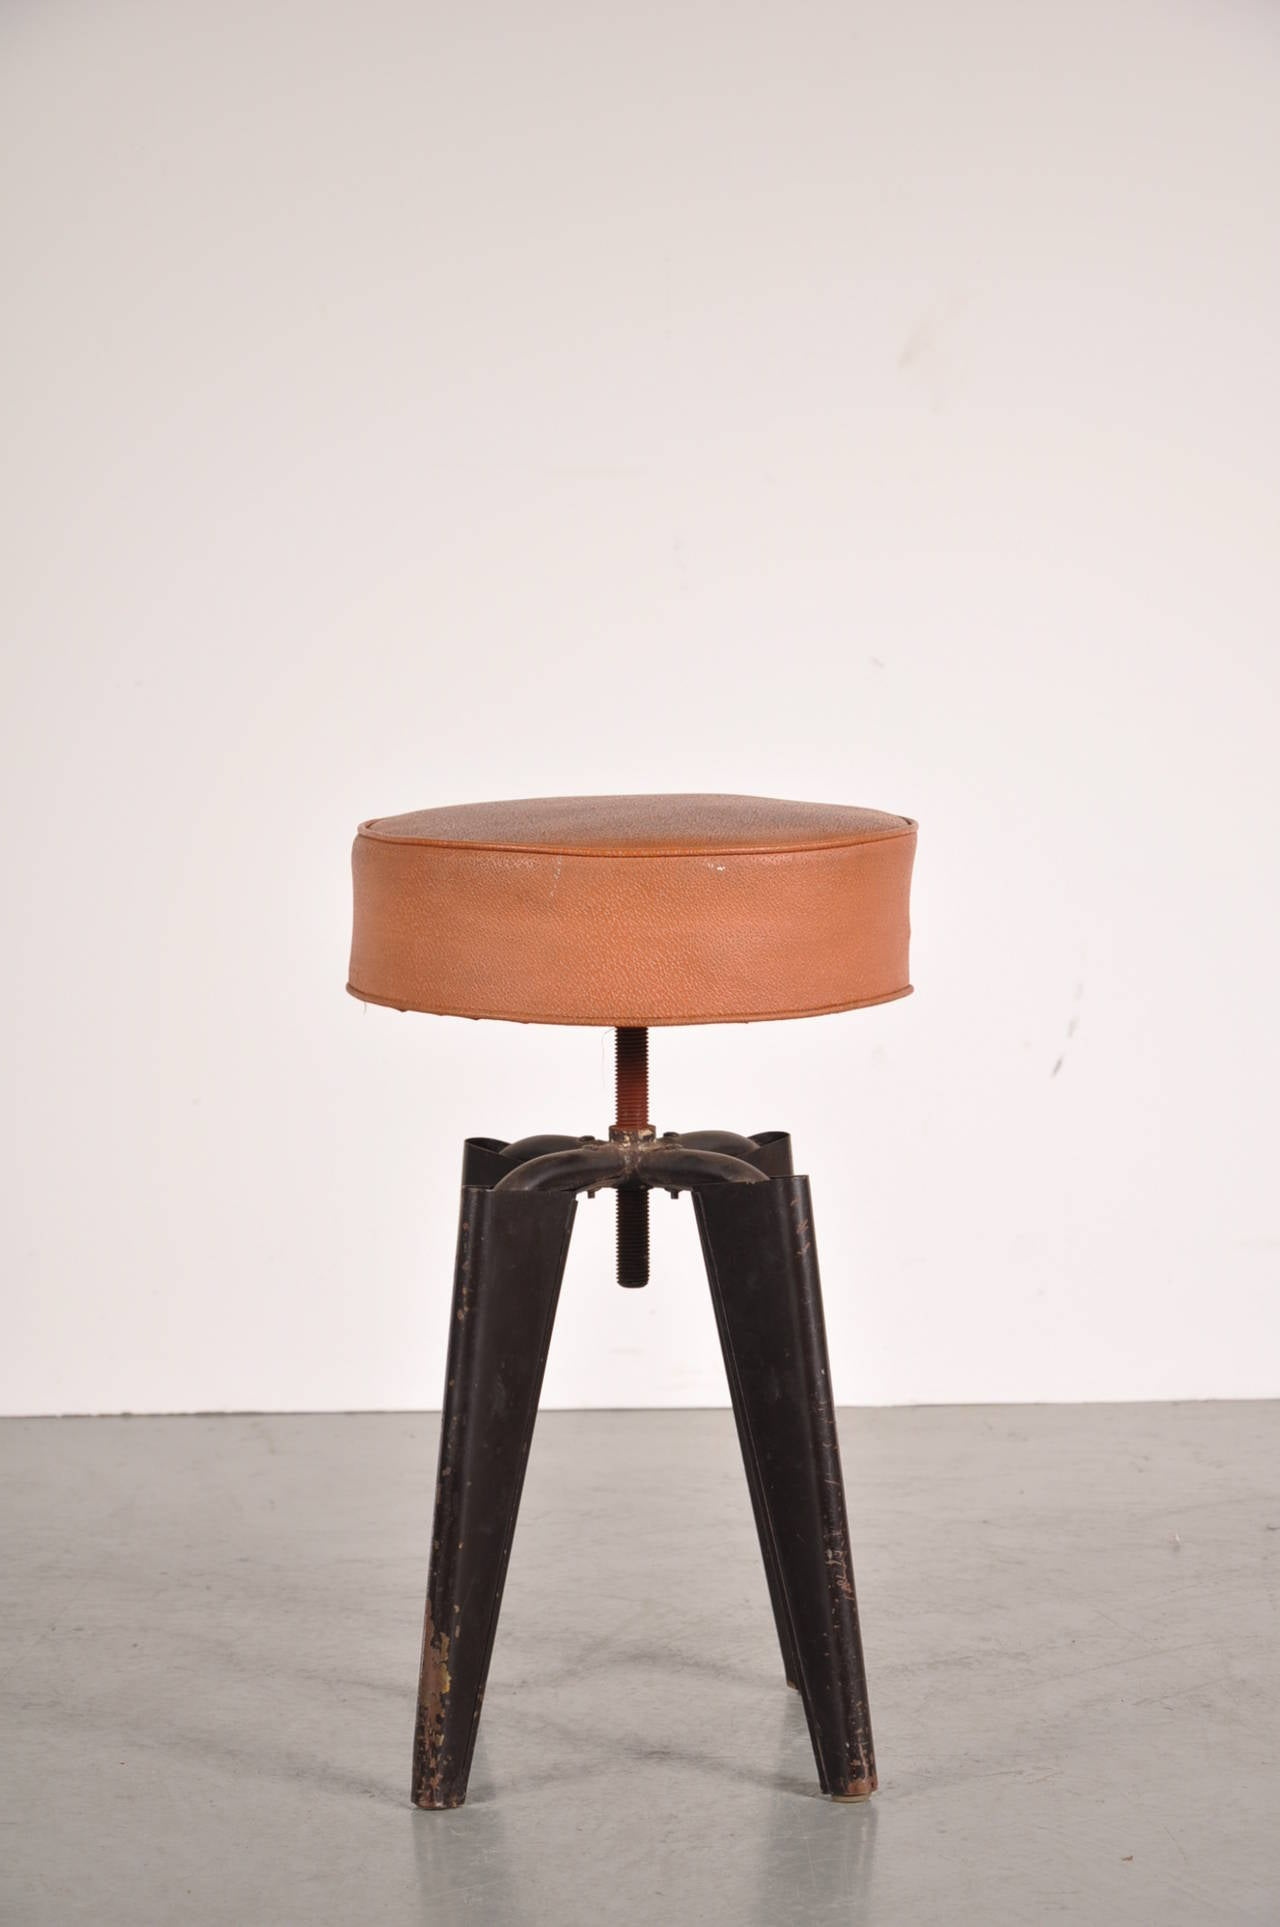 Adjustable Quot Clemenceau Quot Stool By Dominique Circa 1960 For